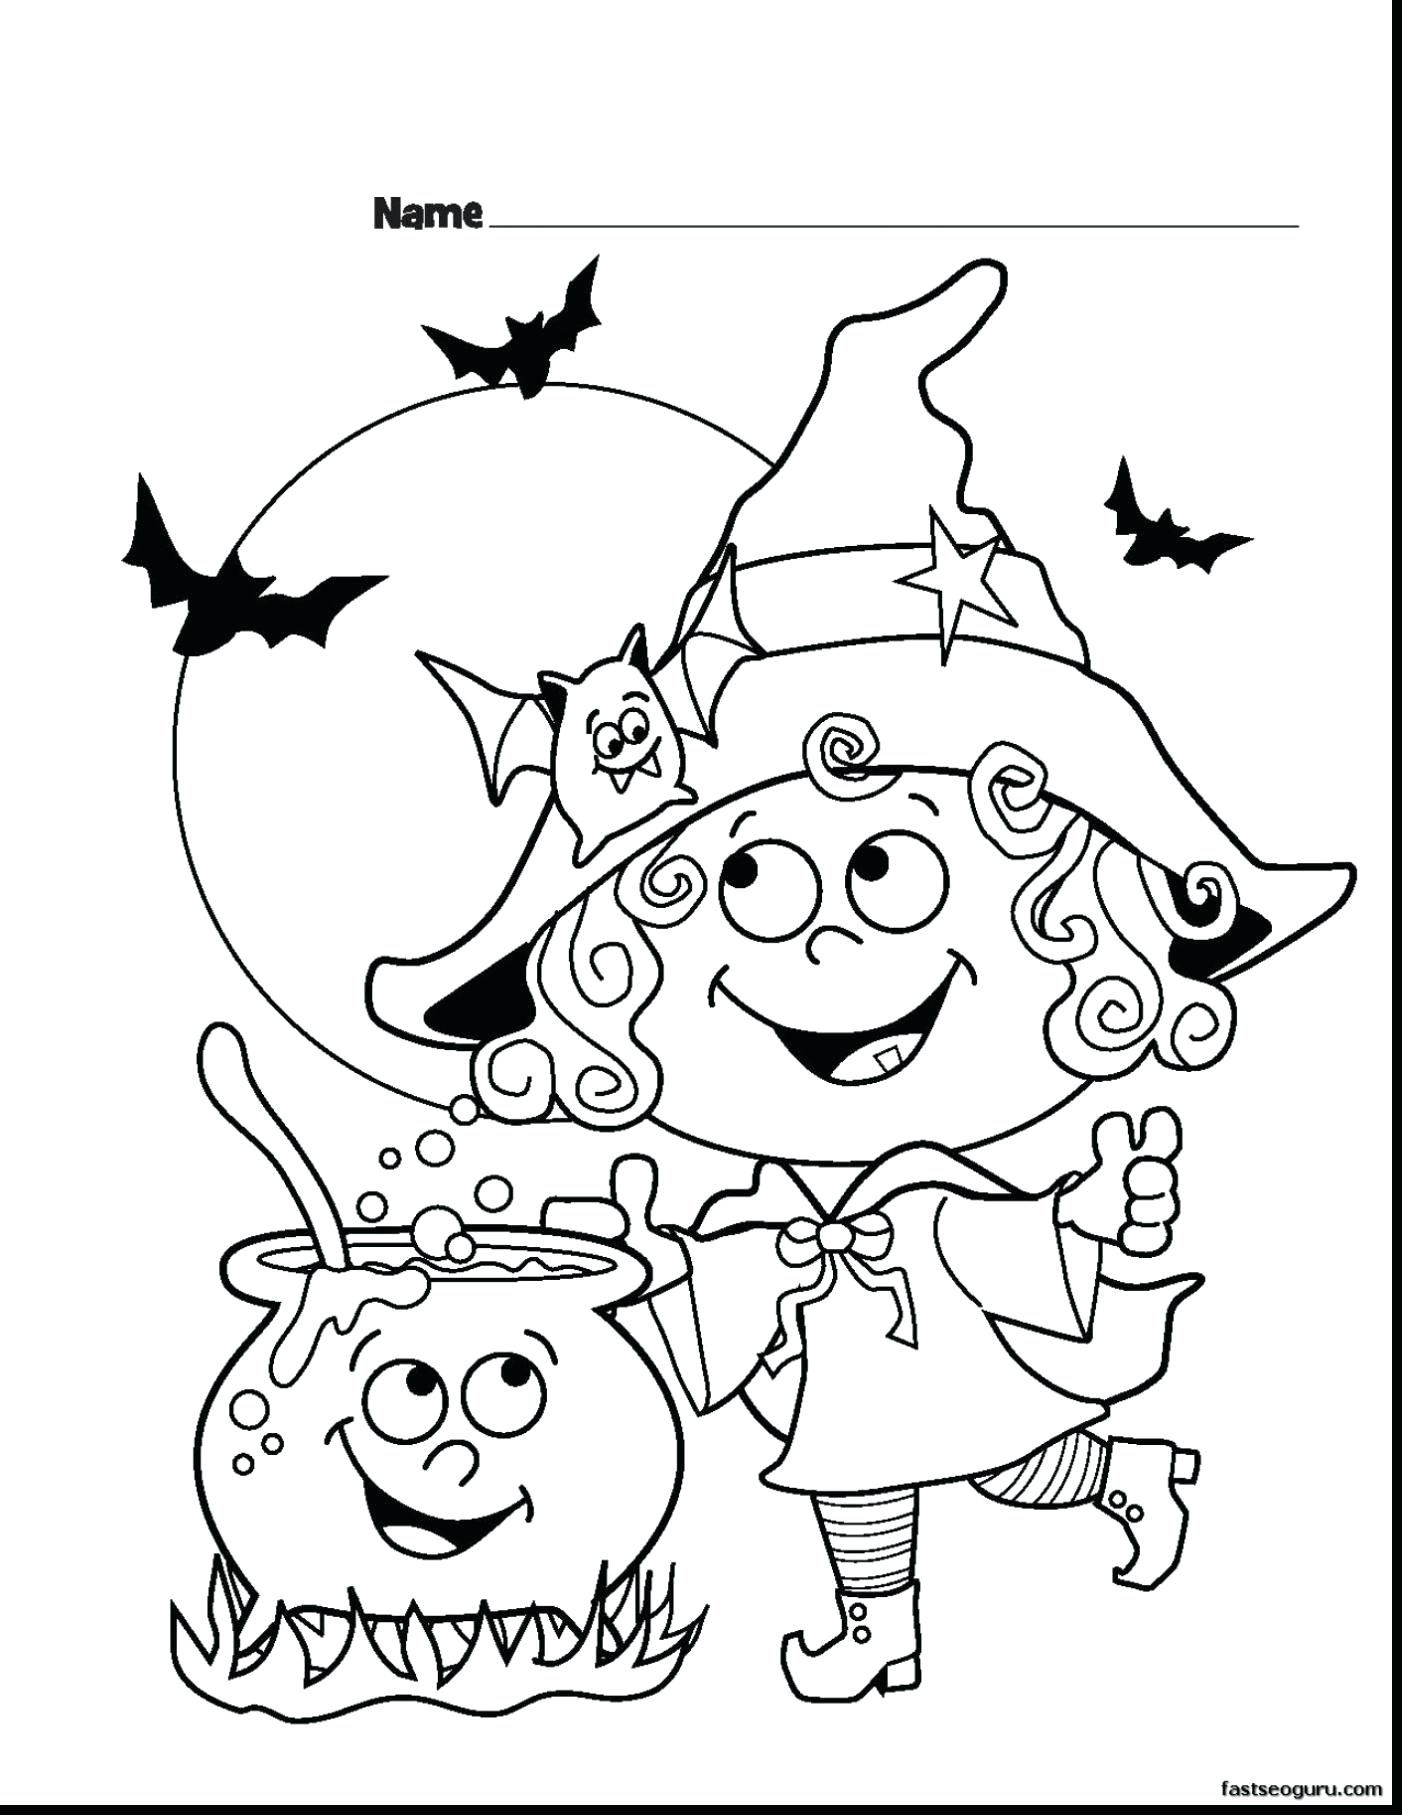 - Free Printable Halloween Coloring Pages For Preschoolers With